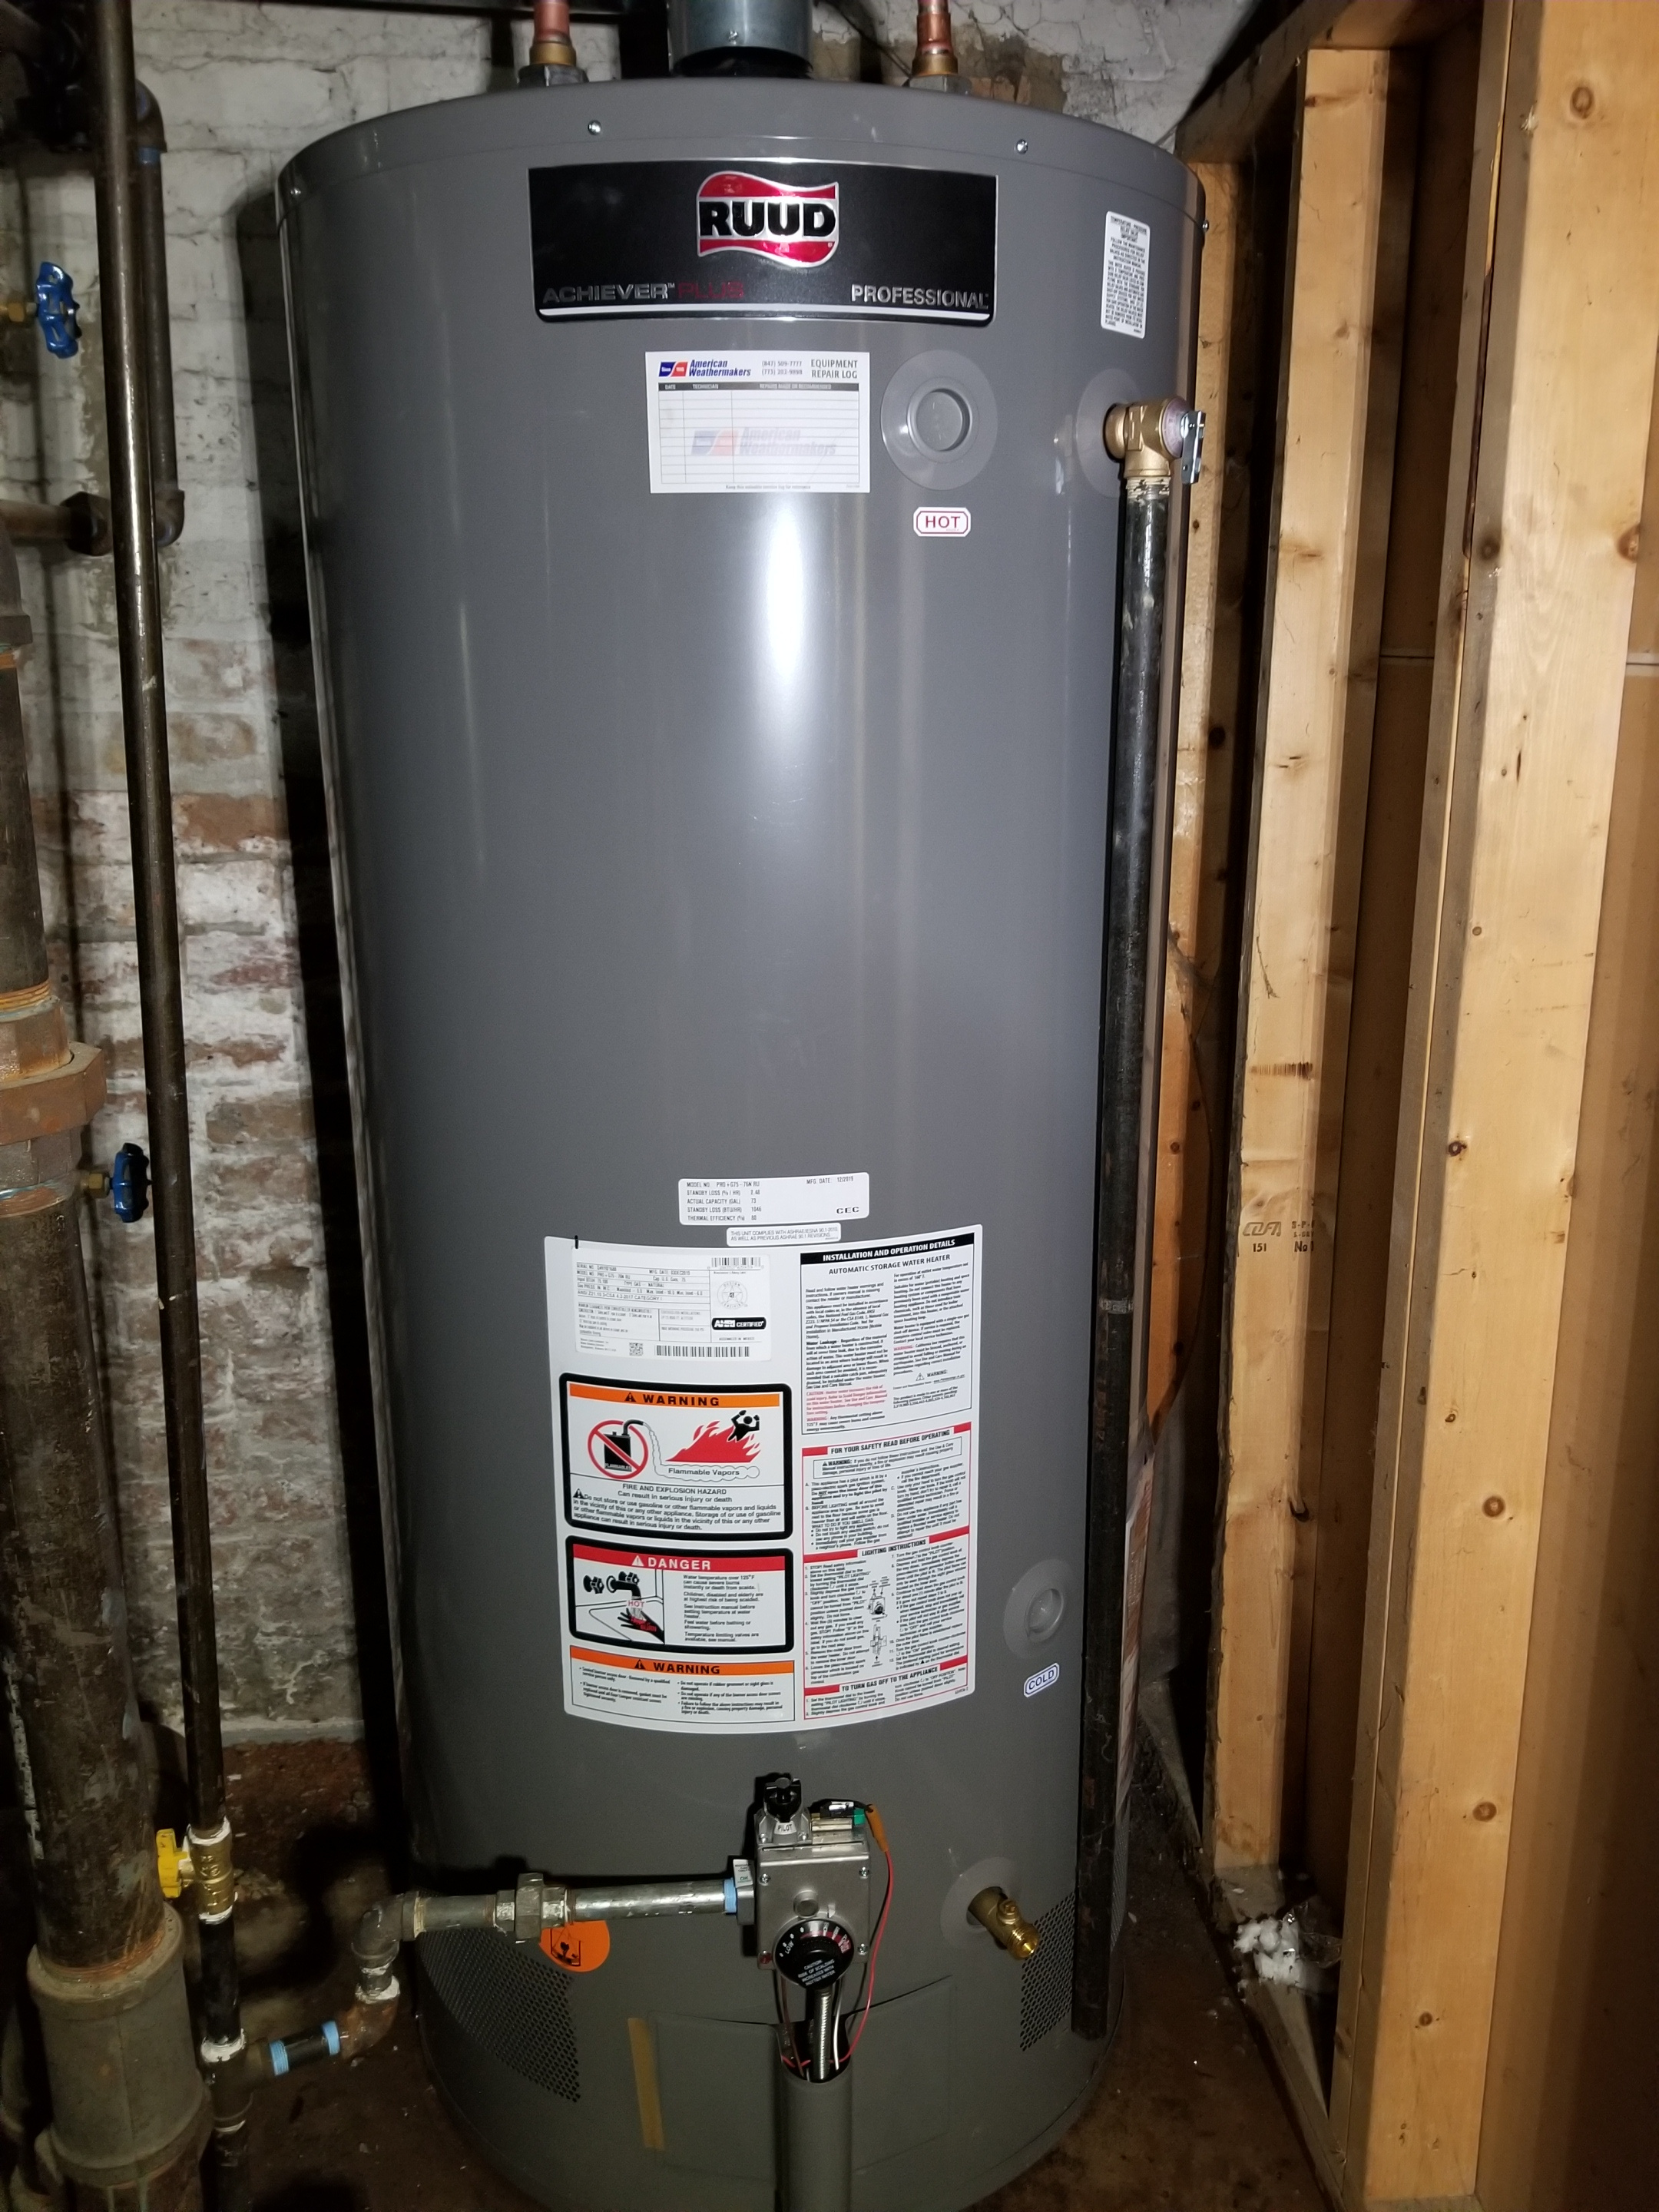 Installed a new Ruud water heater.